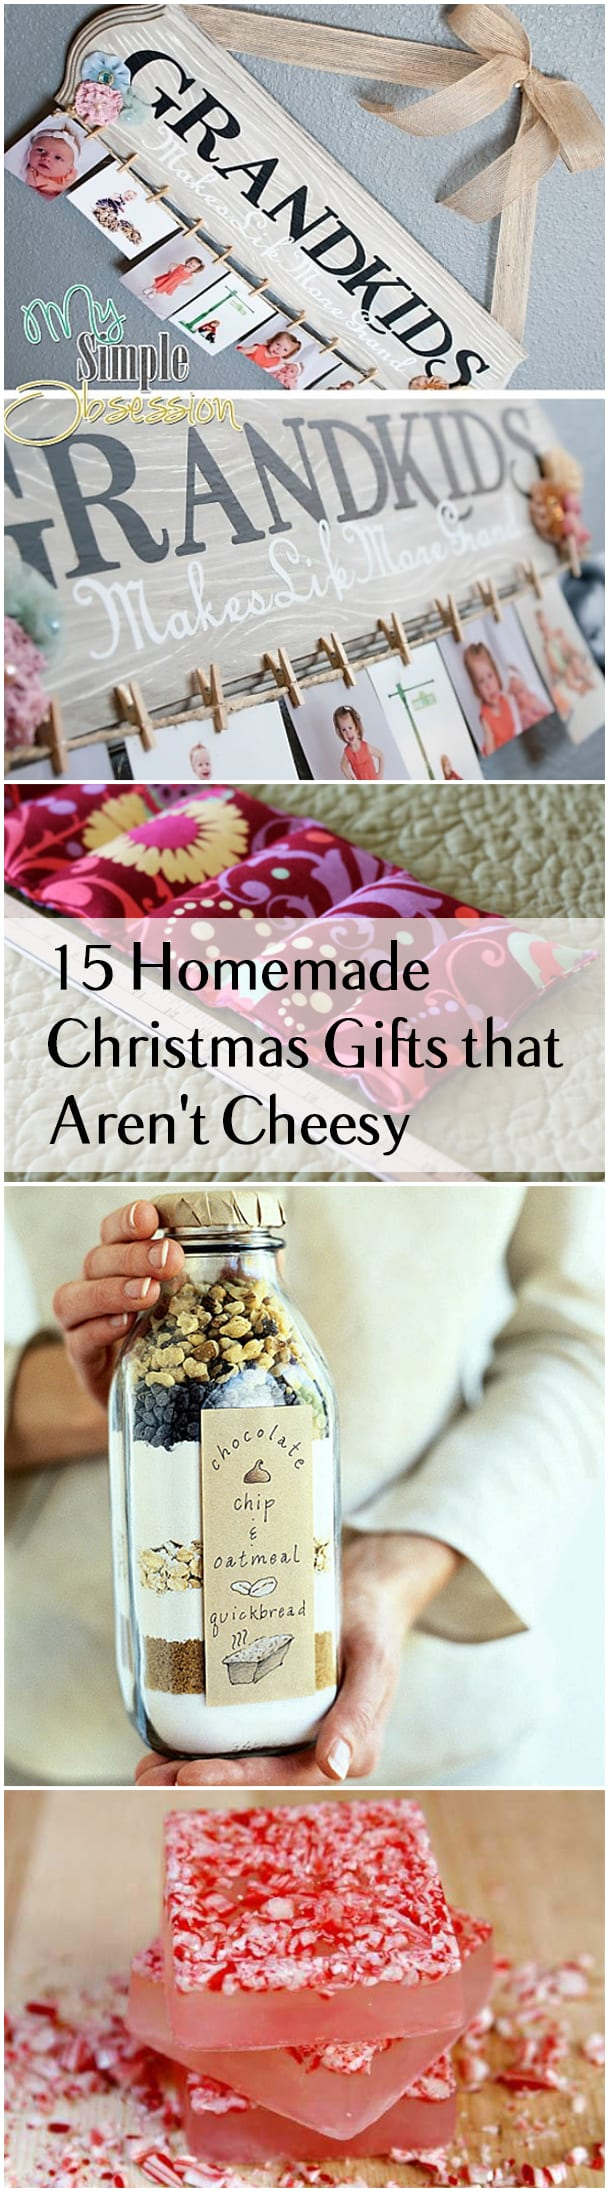 Homemade christmas gifts that aren t cheesy